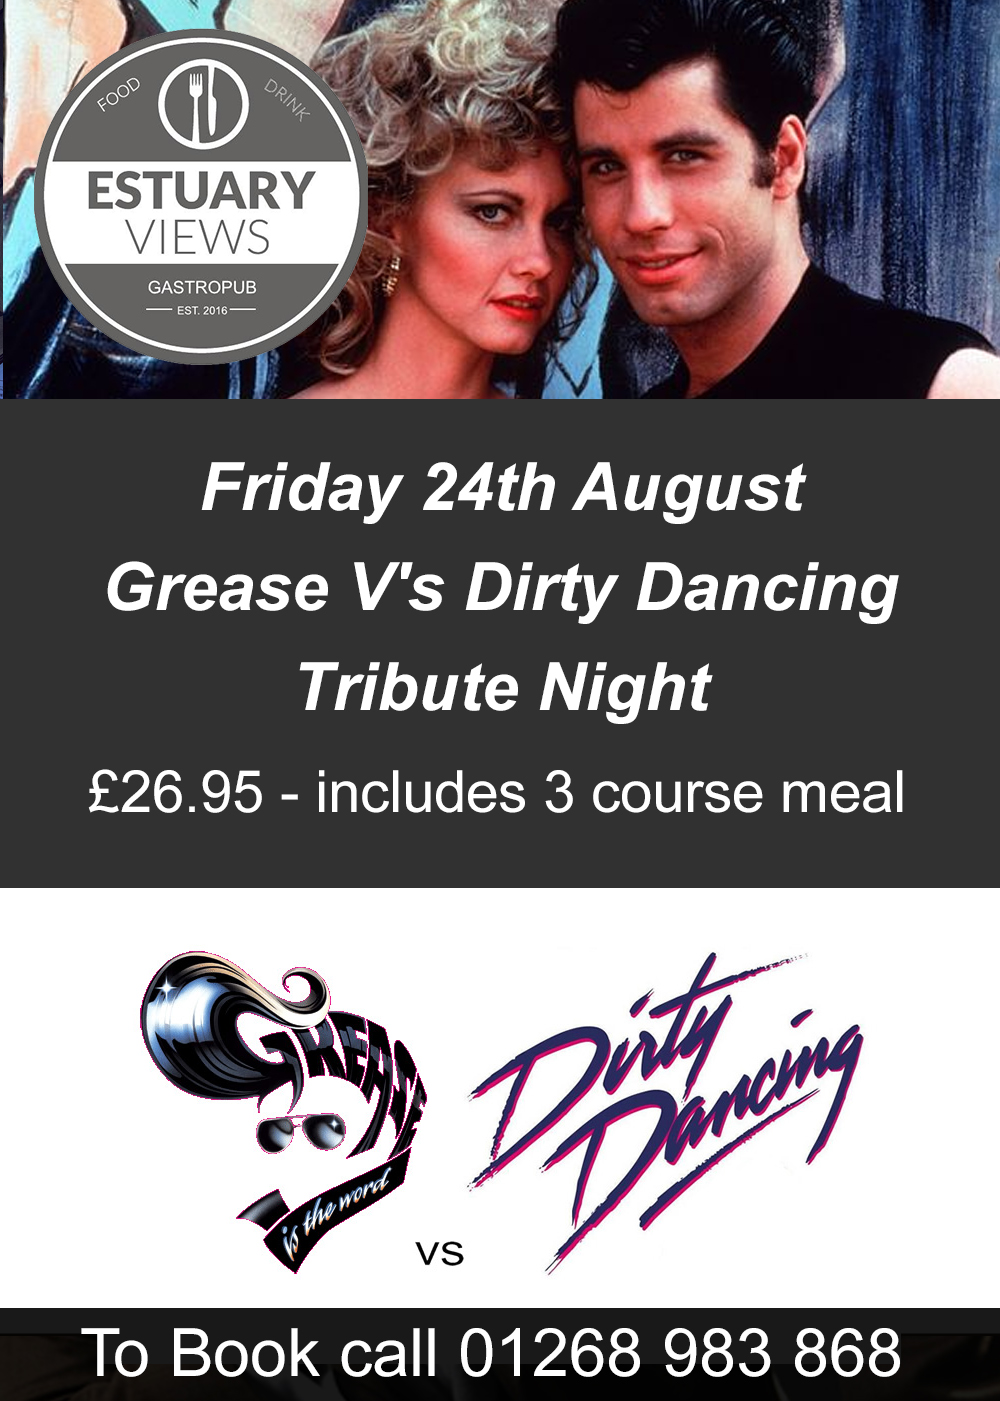 Grease v's Dirty Dancing Tribute Night